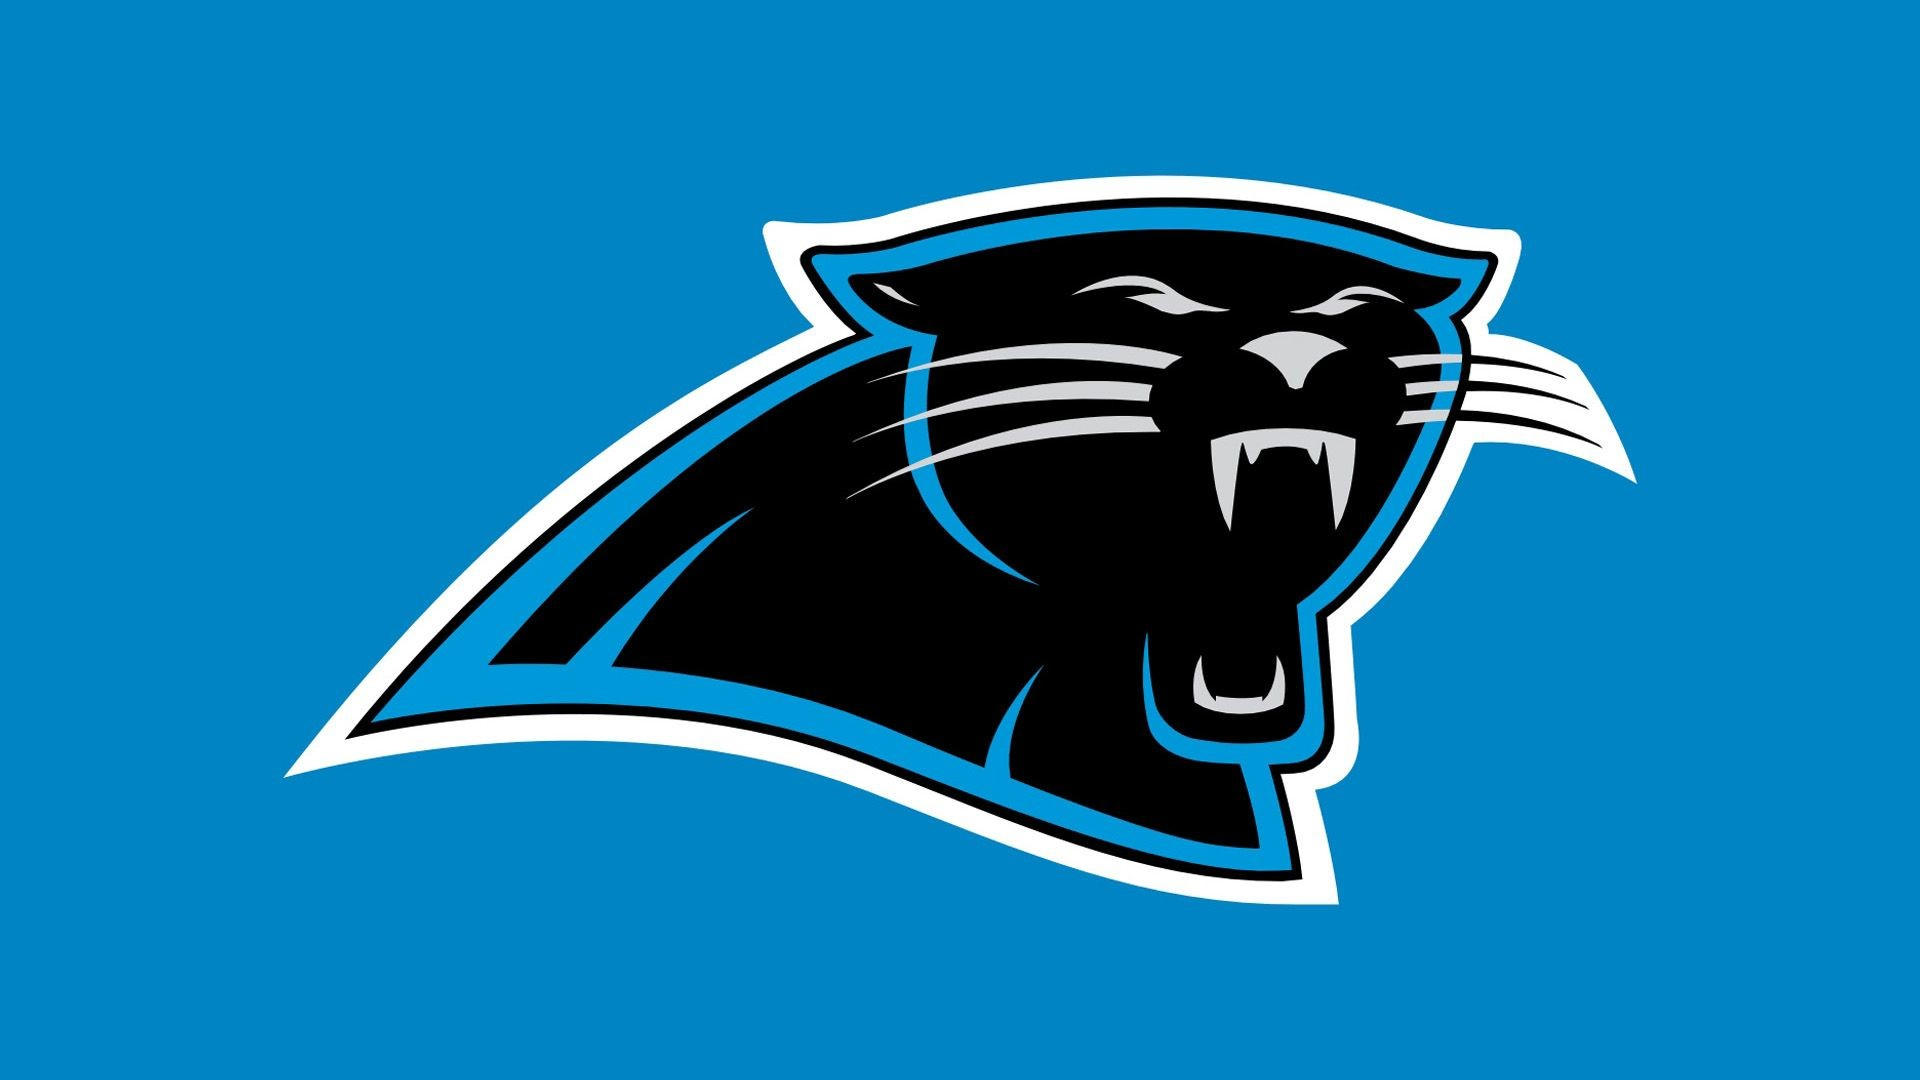 1920x1080 Nfl Panthers Wallpaper